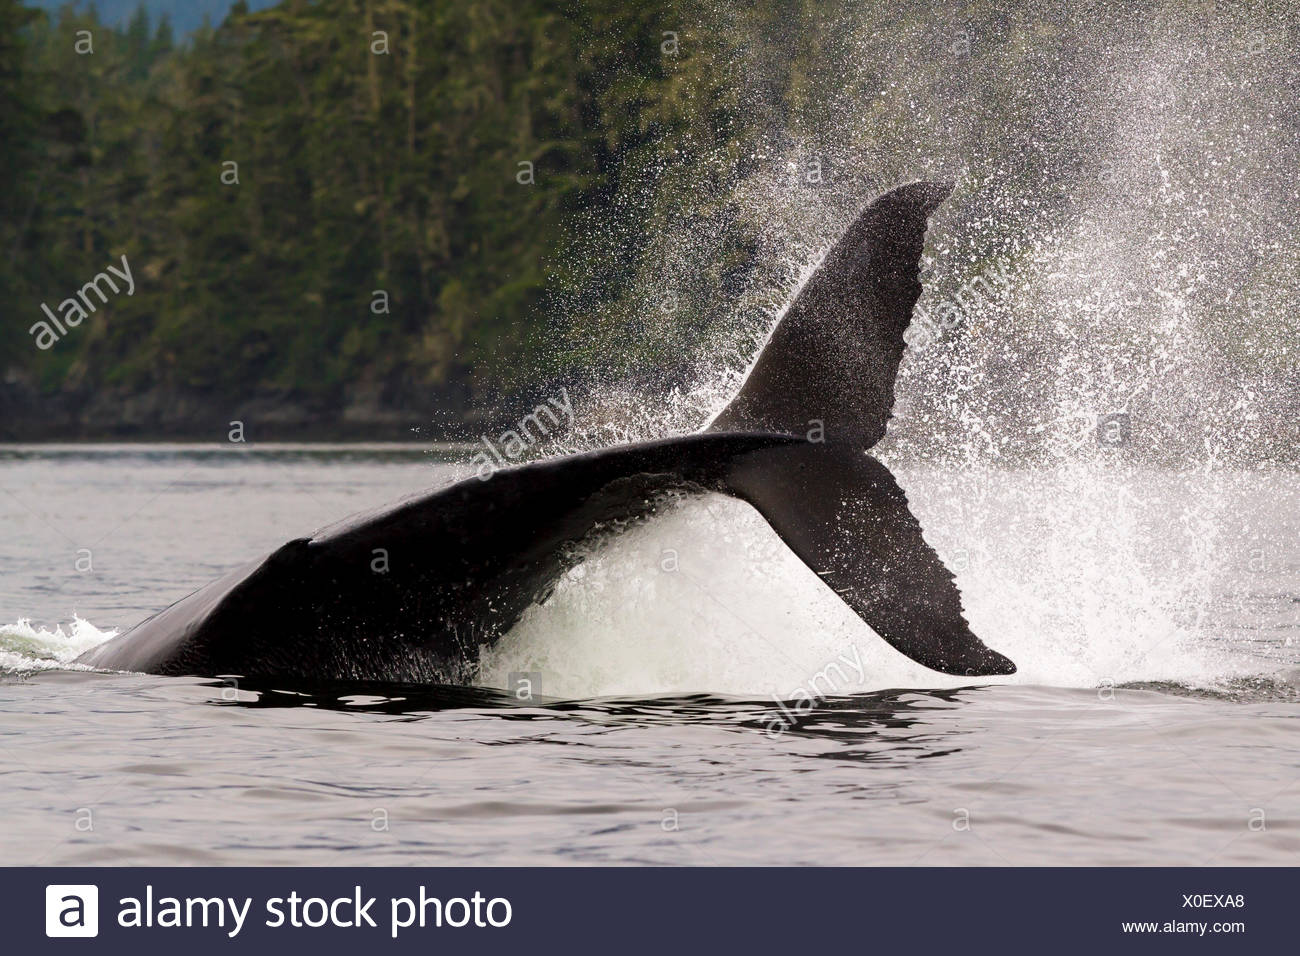 A large male humpback whale hitting his large tail fluke onto the water, aka tail slapping, in Knight Inlet, British Columbia, Canada - Stock Image